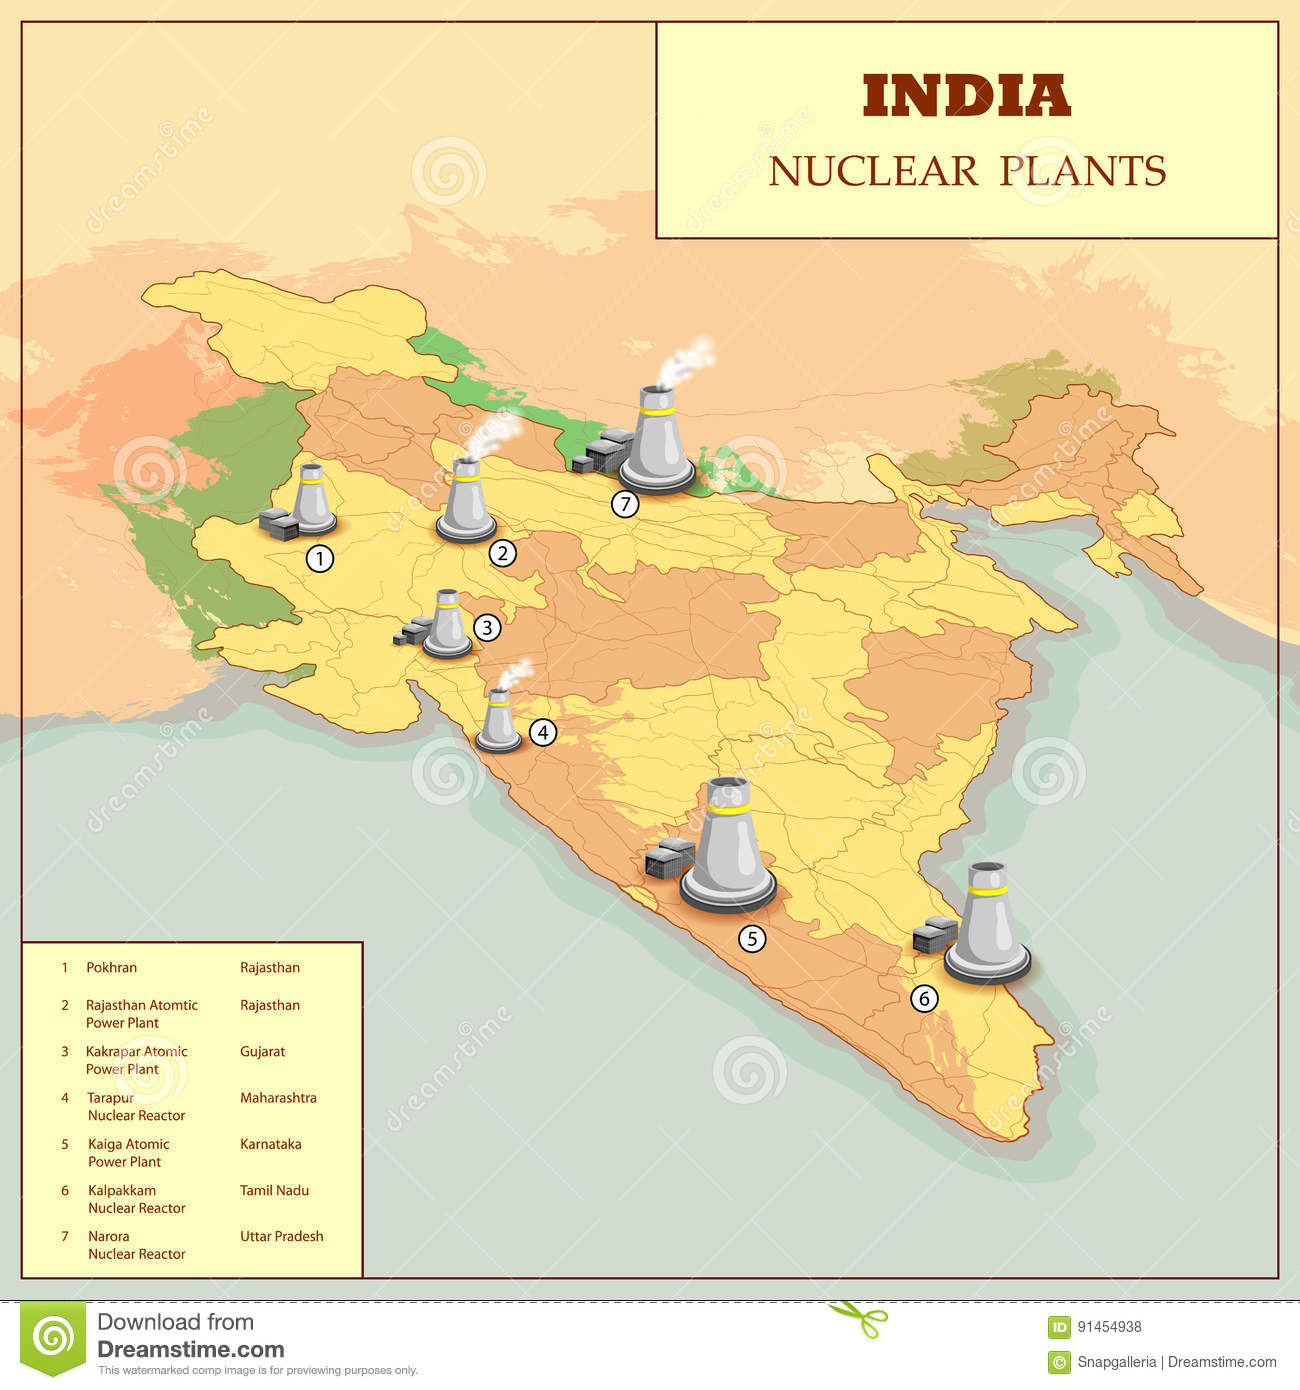 Nuclear Plant Map Of India Stock Vector Image Of Detail - Nuclear plants in india map